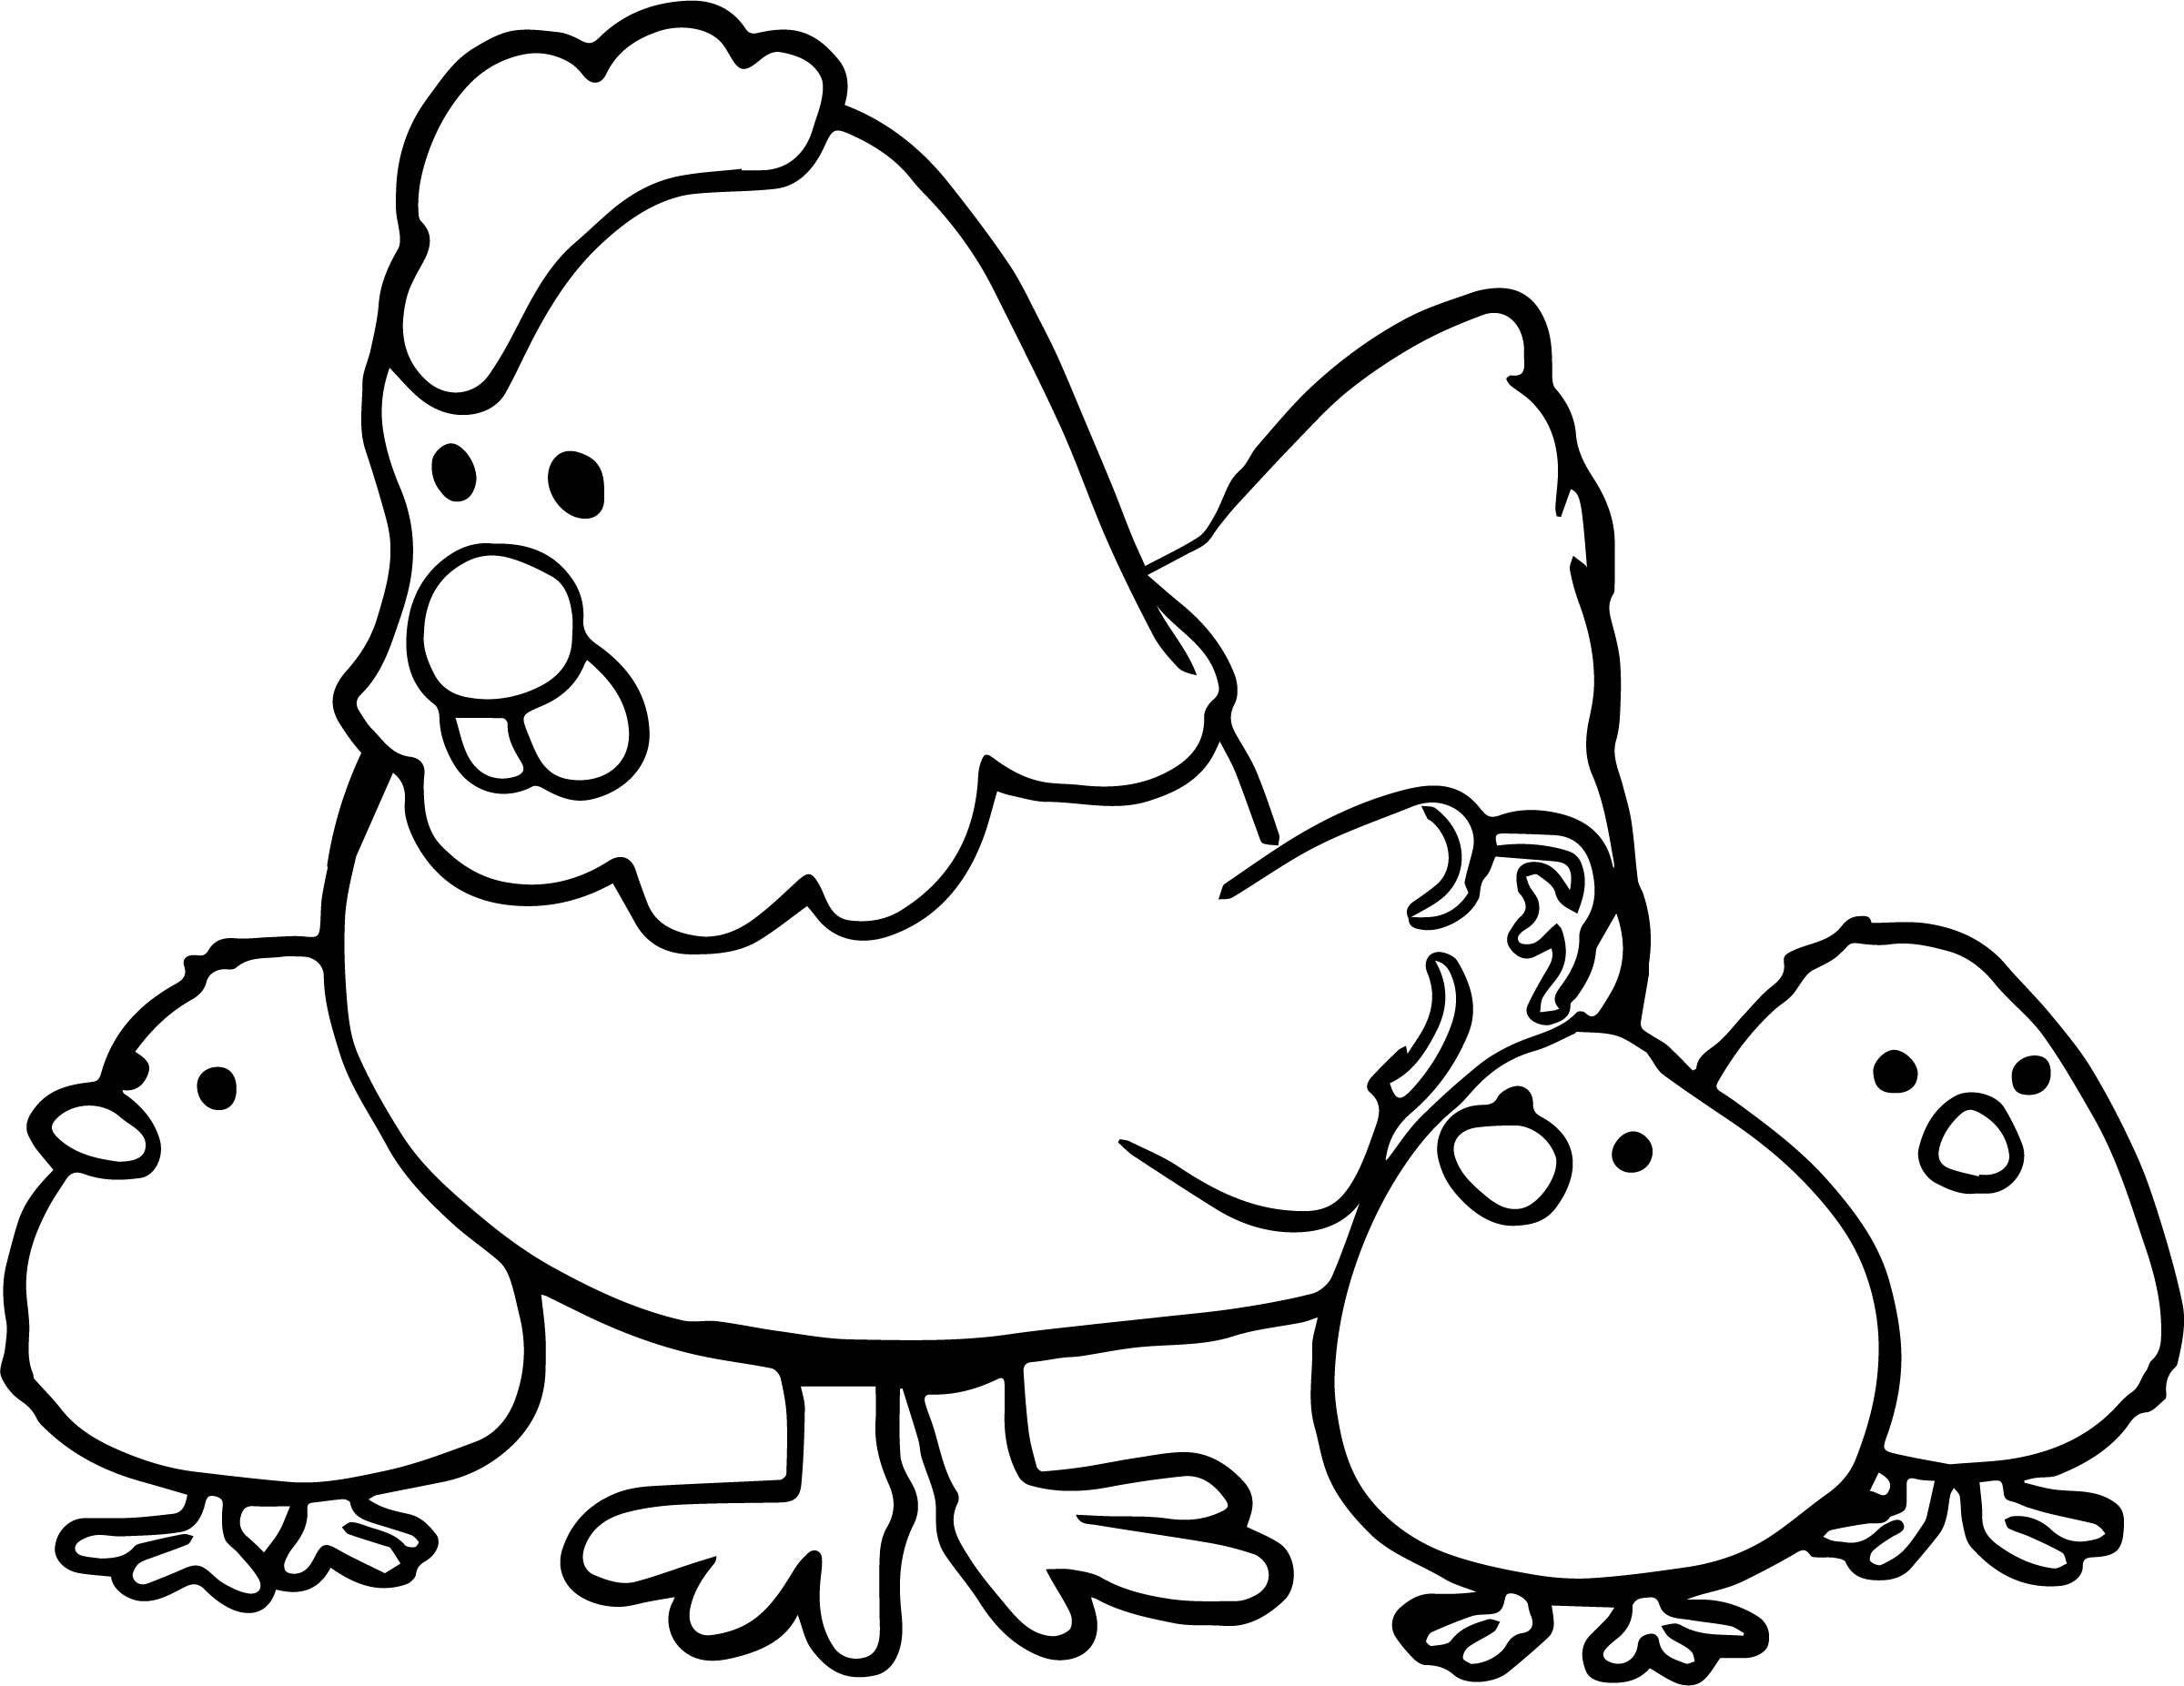 picture of a rooster to color funny rooster coloring pages for kids rooster a color to of picture